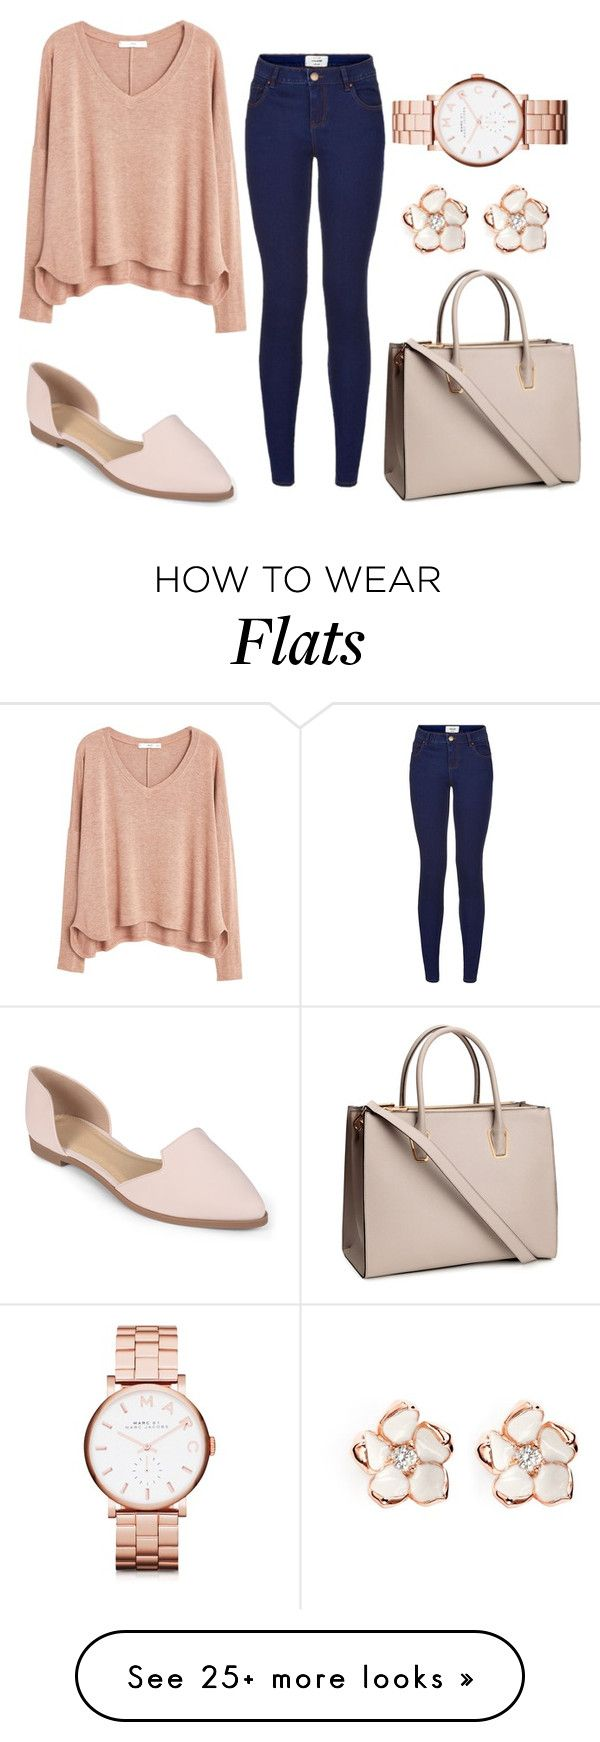 """Untitled #45"" by diianasilva on Polyvore featuring MANGO, Journee Collection, H&M, Marc by Marc Jacobs and Shaun Leane"